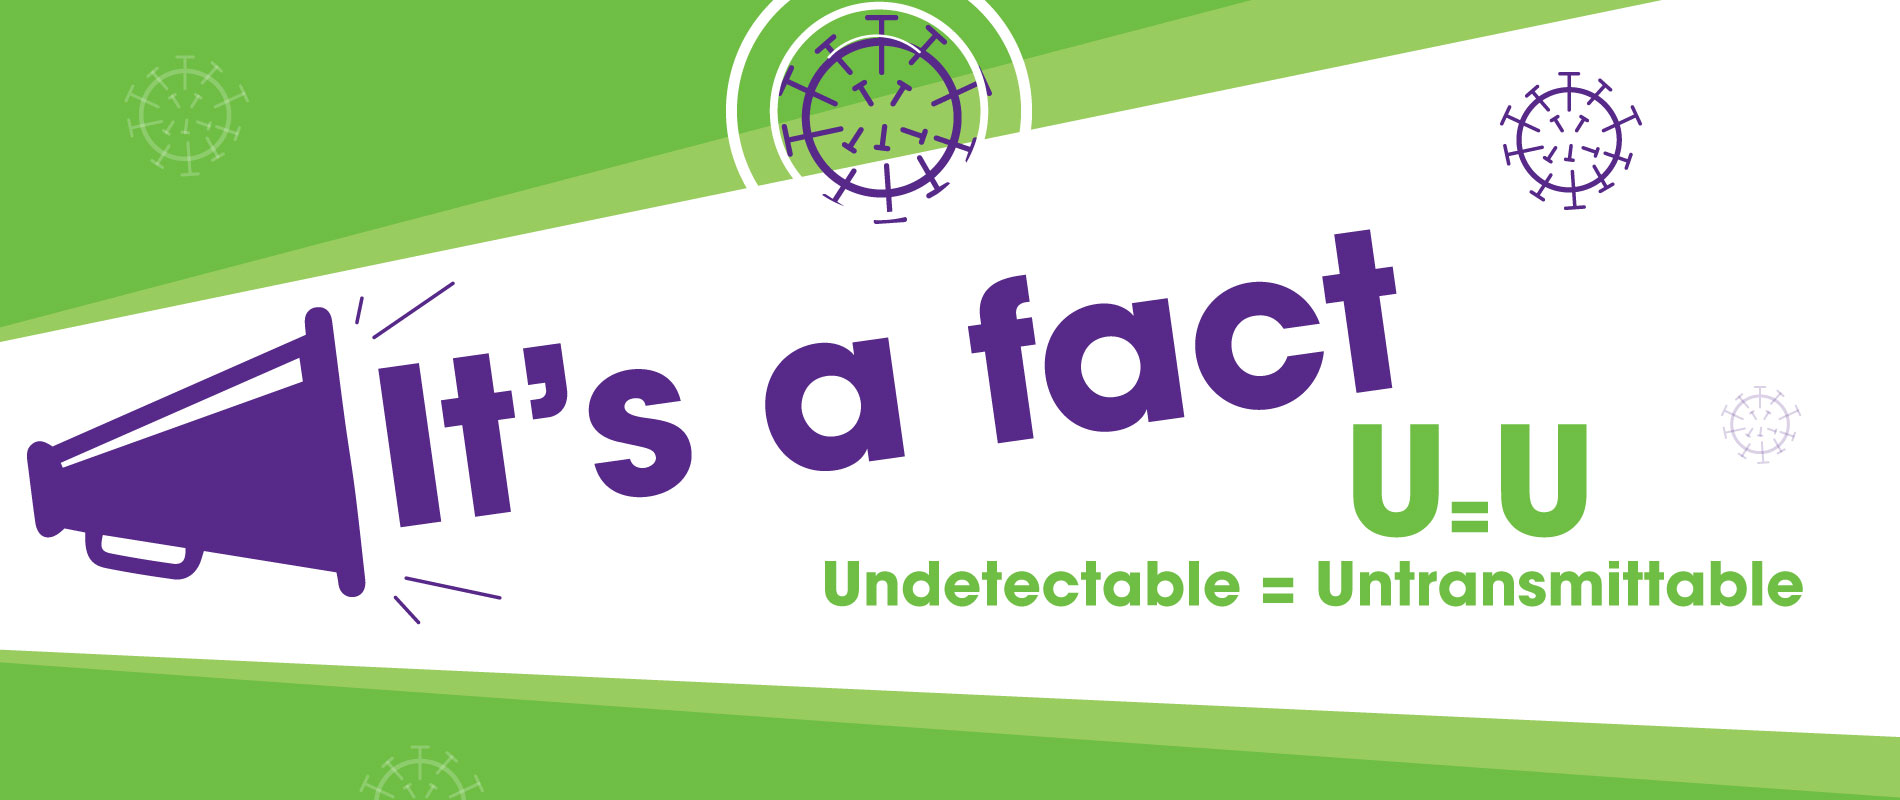 Undetectable = Untransmittable graphic